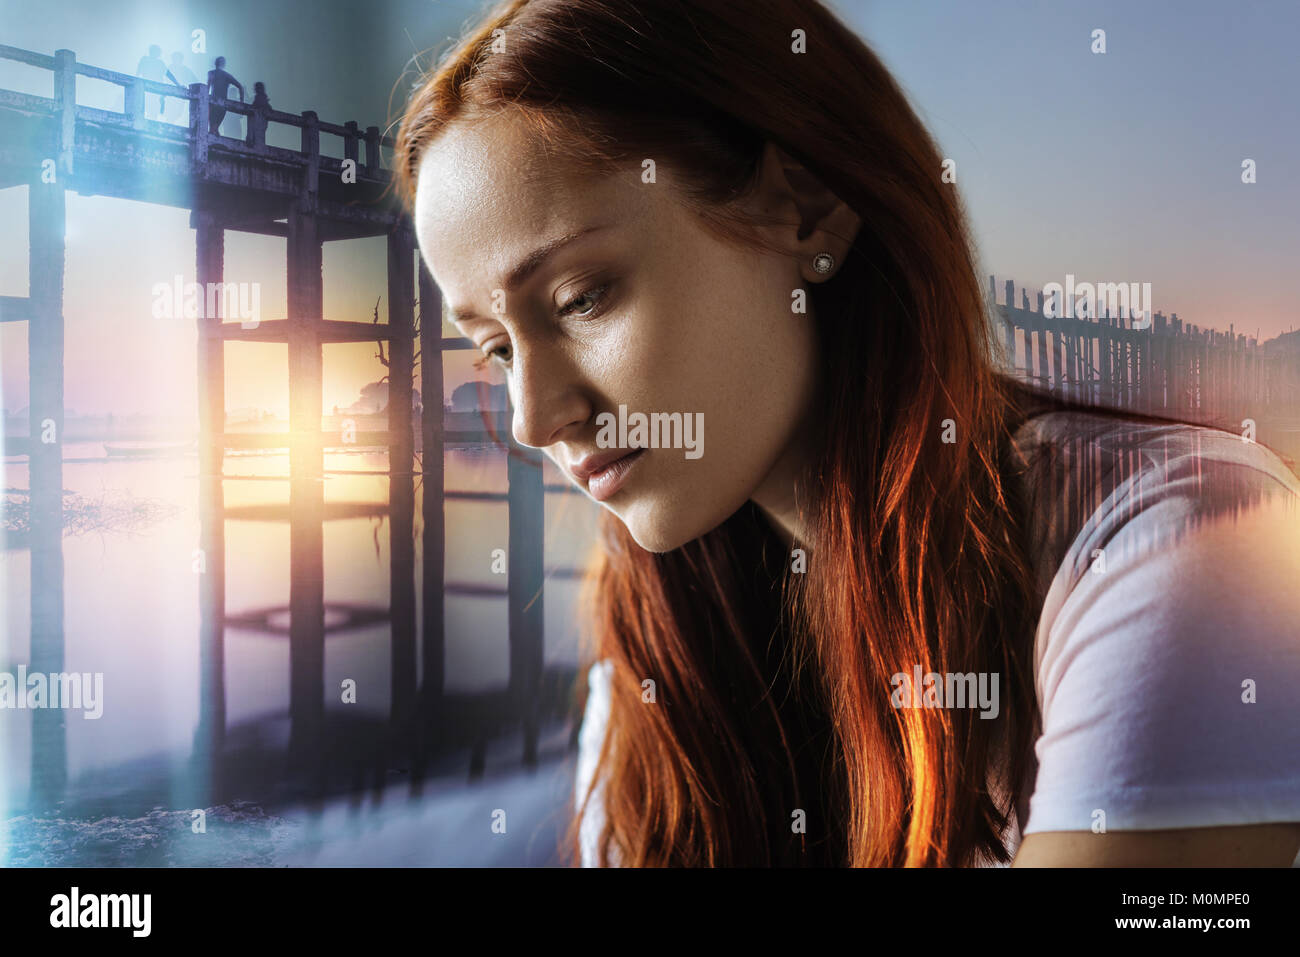 Pretty deep woman looking down and thinking. - Stock Image